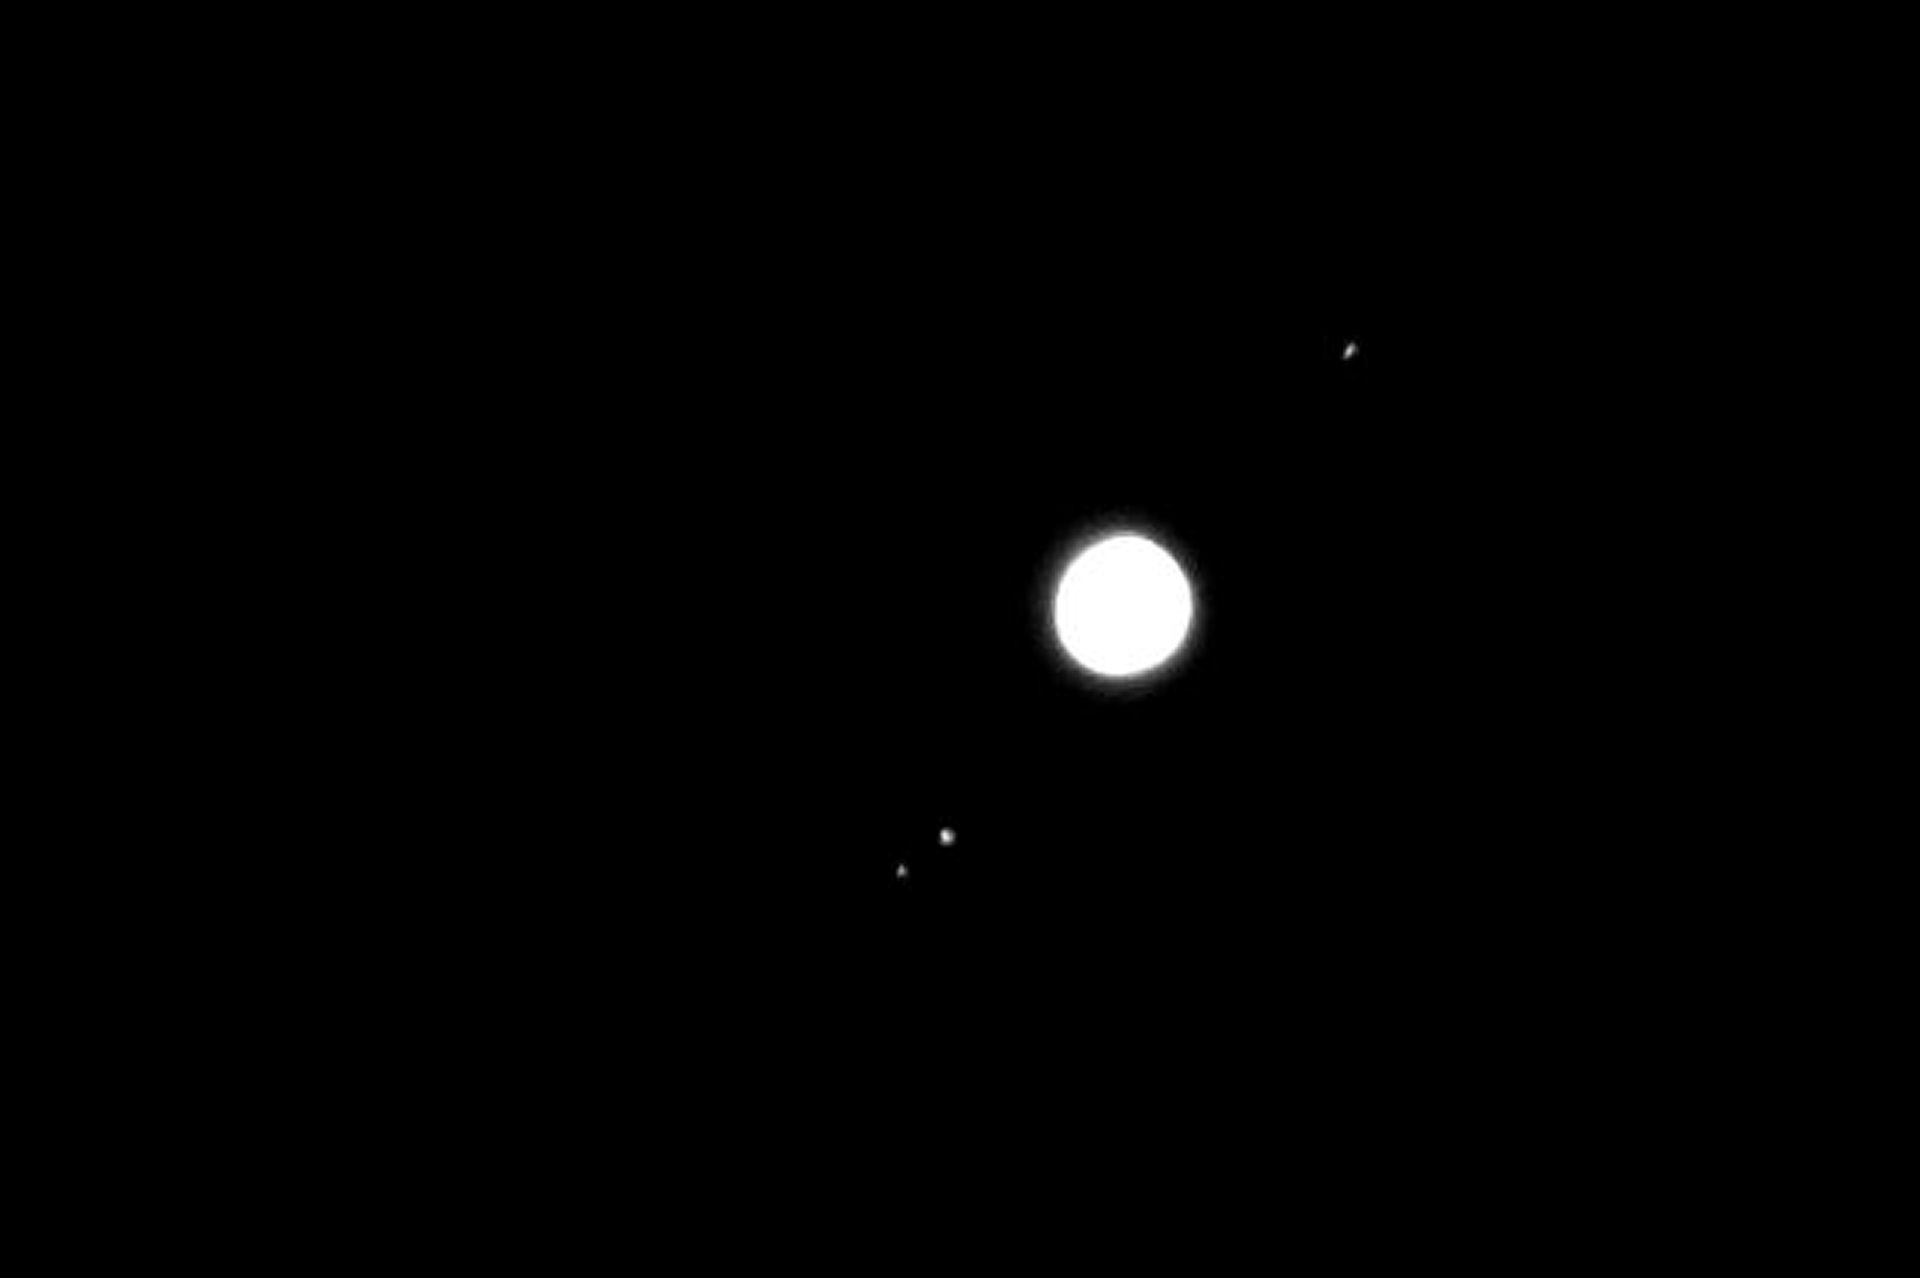 "Jupiter and moons By Bill Samson. 20th March 2015  19.37UT.  Fujifilm XF1, f4.9: 1/5 sec:  ISO-200 23mm focal length.  ""I've now done a bit of tweaking and cropping to my best shots of Jupiter from the other night when everybody else seemed to be clouded out.  I took one to show the cloud belts, and another to show the moons. ""-Bill S"